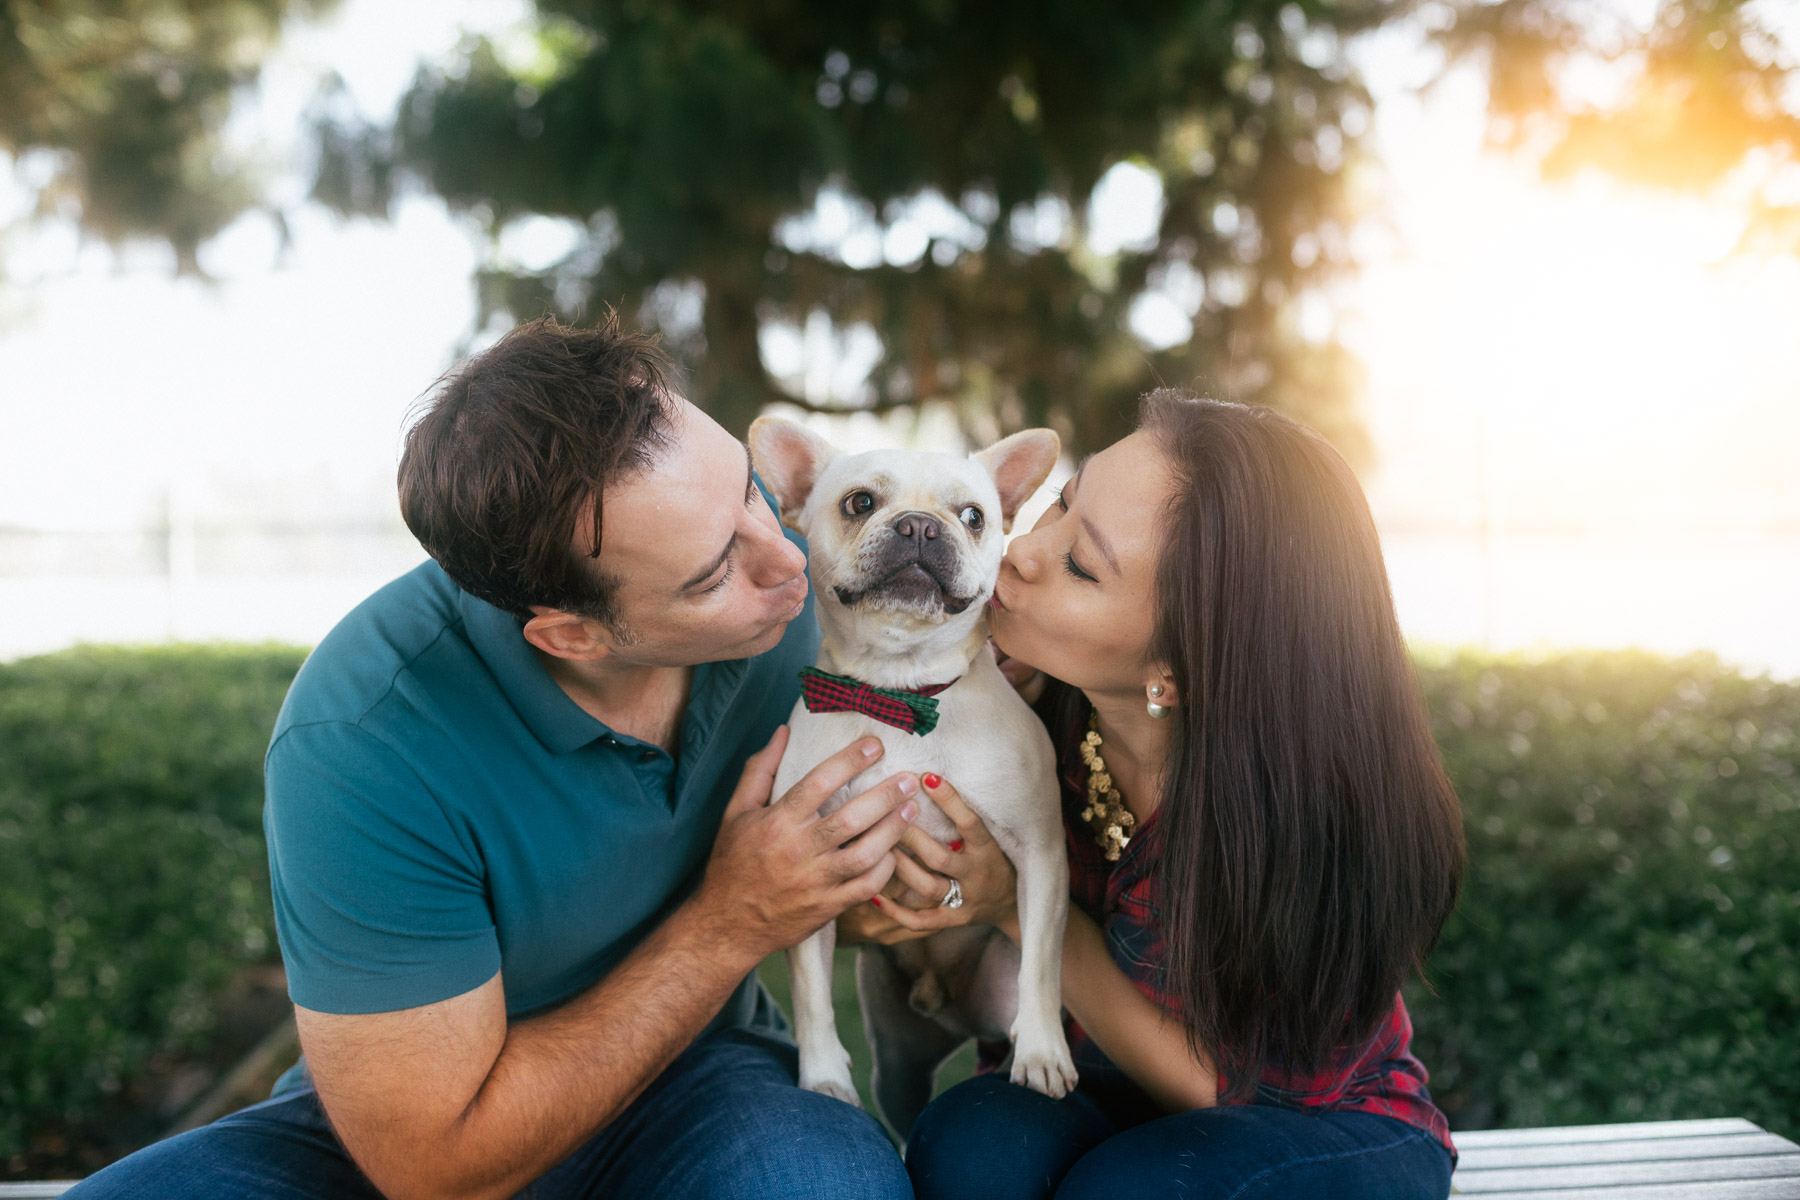 couple-kissing-dog-animal-photographer-santa-monica.jpg